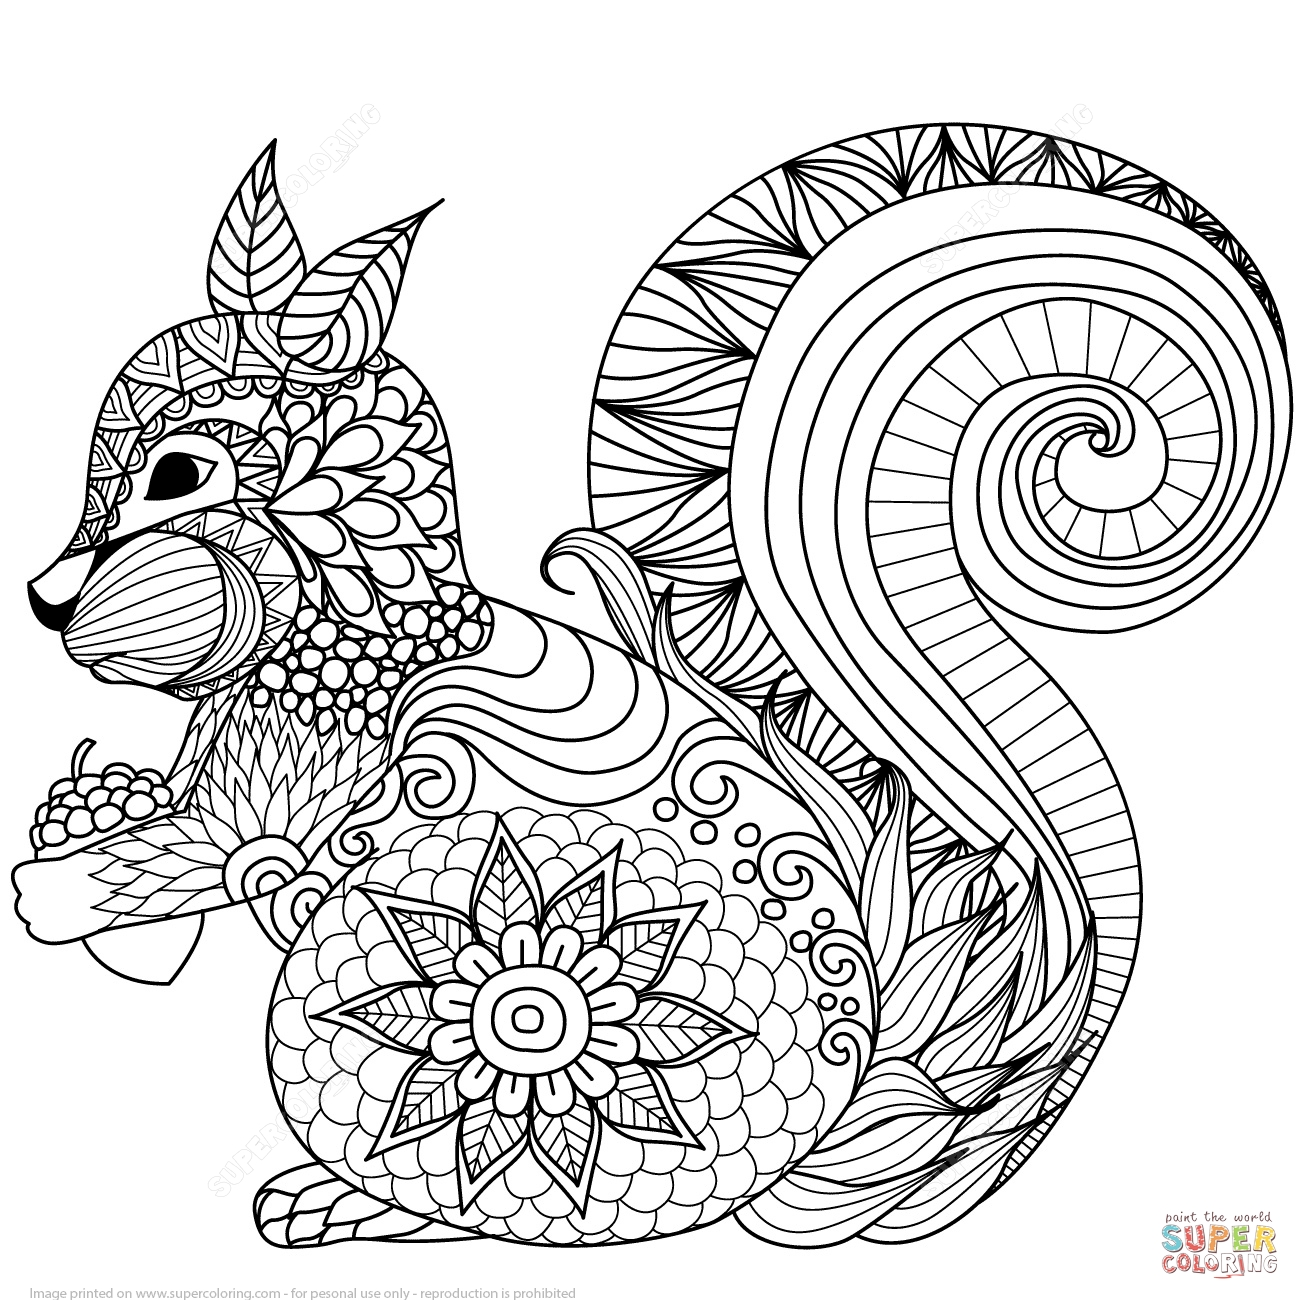 Zentangle Coloring Pages - Zentangle Coloring Pages Coloring Home